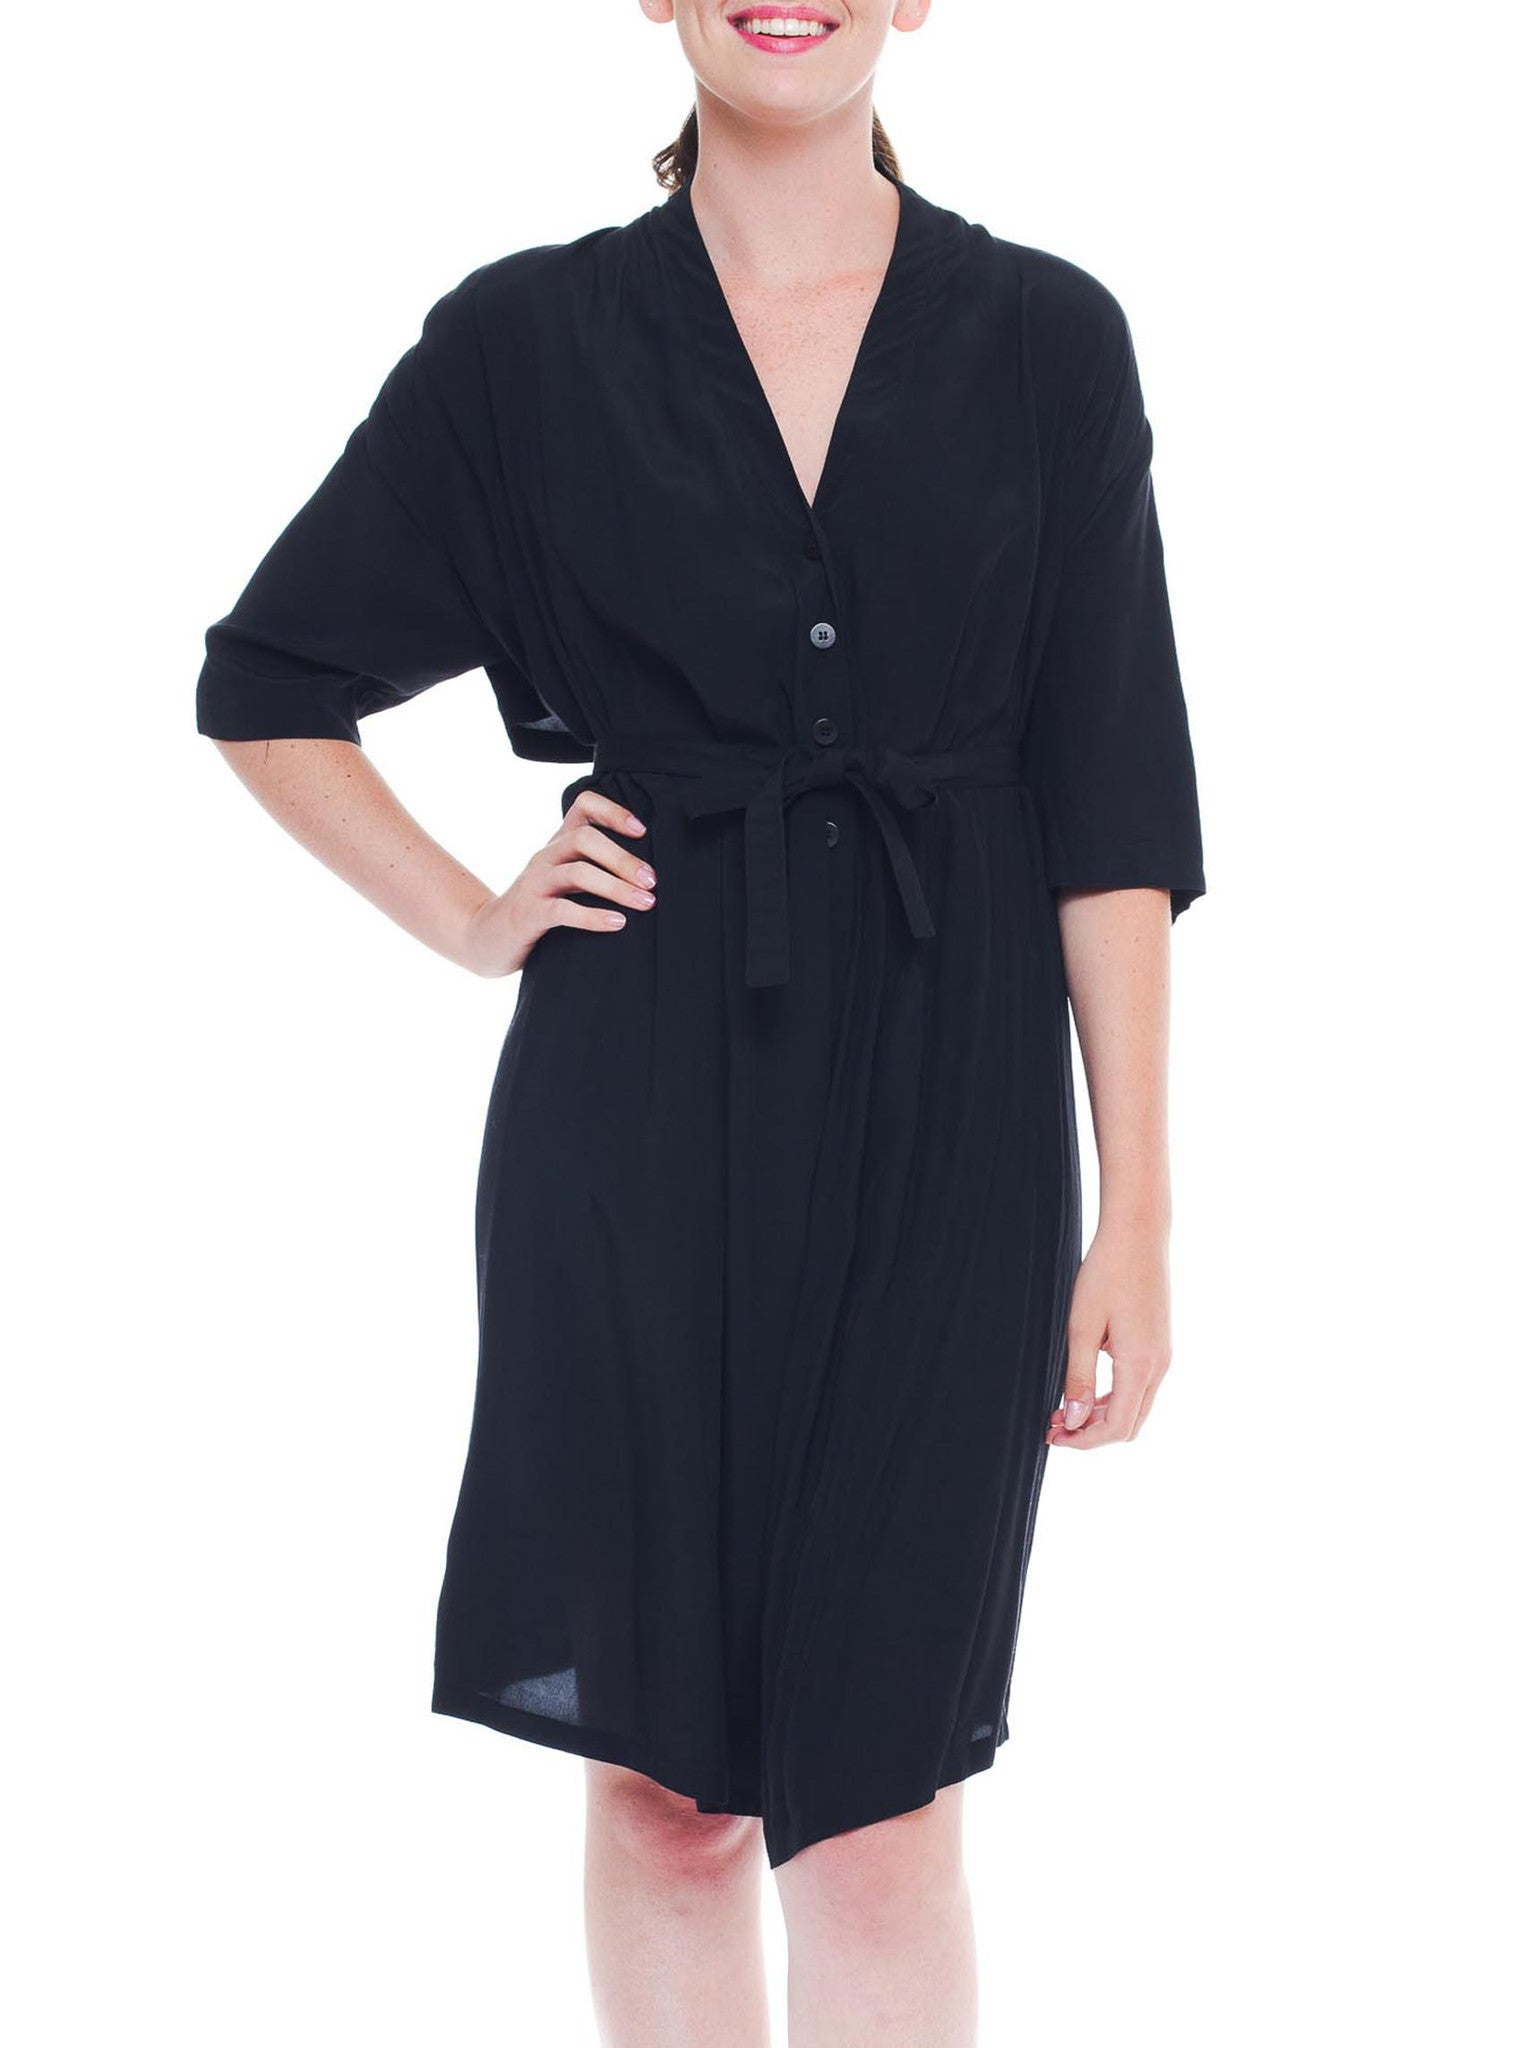 Light and Airy Ann Demeulemeester Black Romper